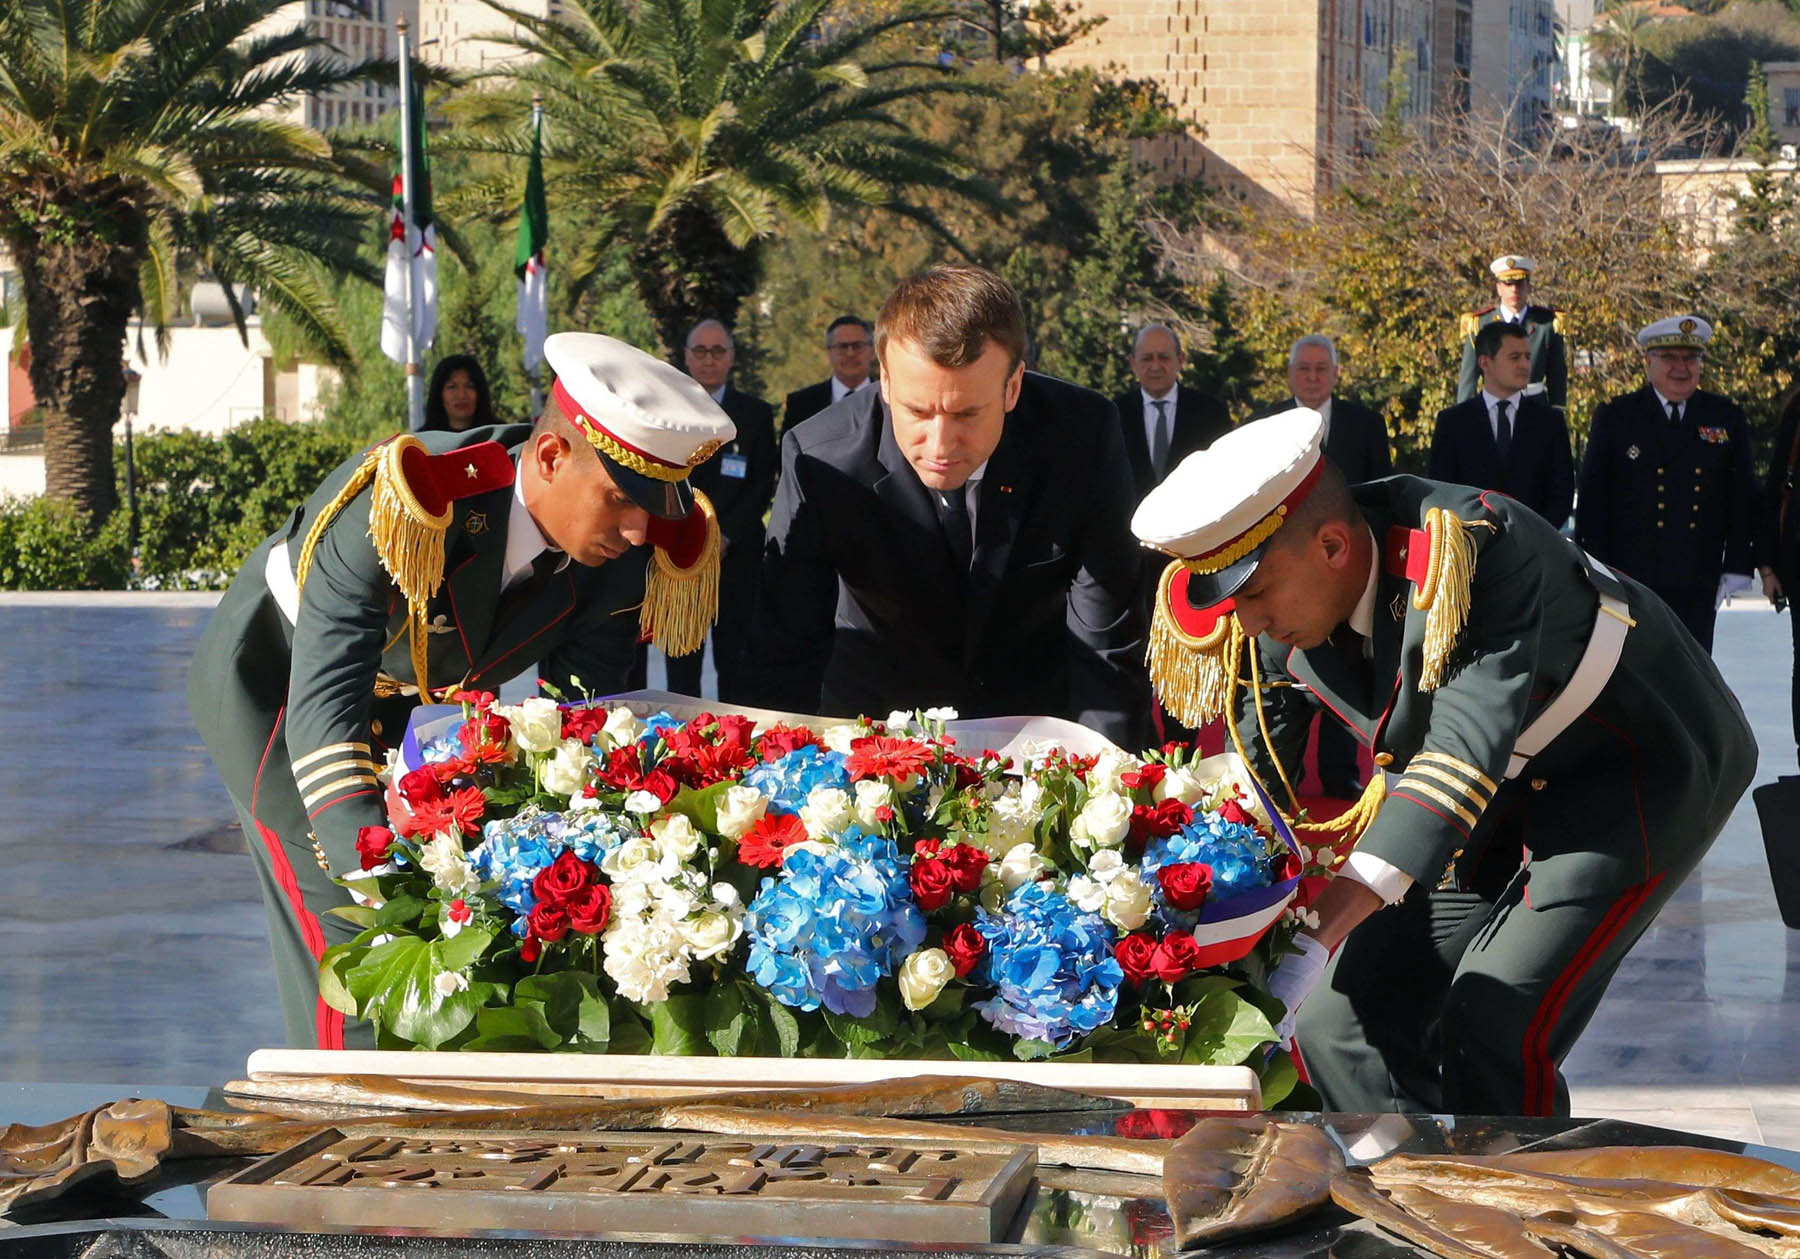 French President Emmanuel Macron (C) lays a wreath at the Martyrs' Memorial in the Algerian capital Algiers during his visit on December 6, 2017. (AFP)